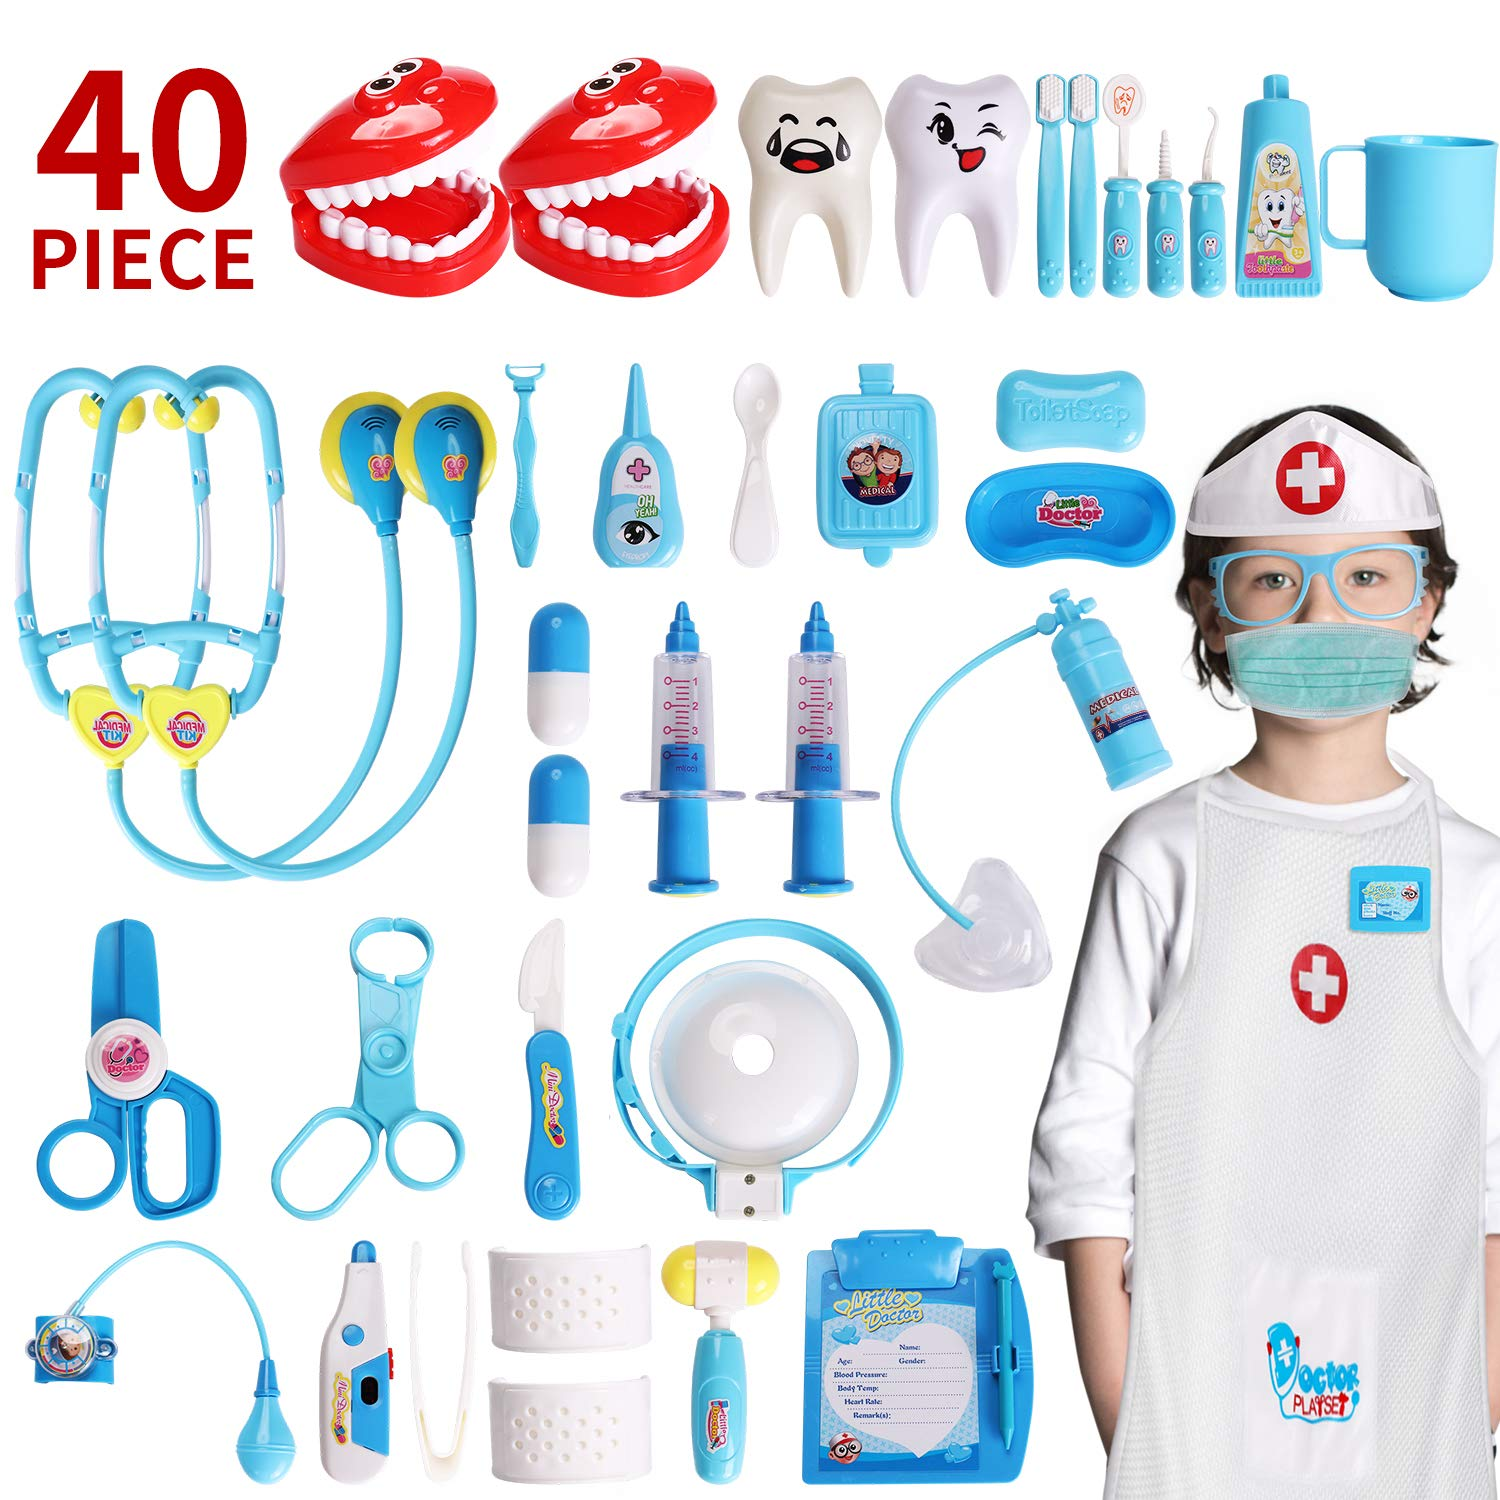 XINSHI Doctor Pretend Role Play Medical Dentist Kits Toys with Stethoscope , Thermometer, Blood Pressure Cuff and Dress-up Coat for Your Kid/Boy/Girl/Princess/Granddaughter/Grandson (40 Pcs ) by XINSHI